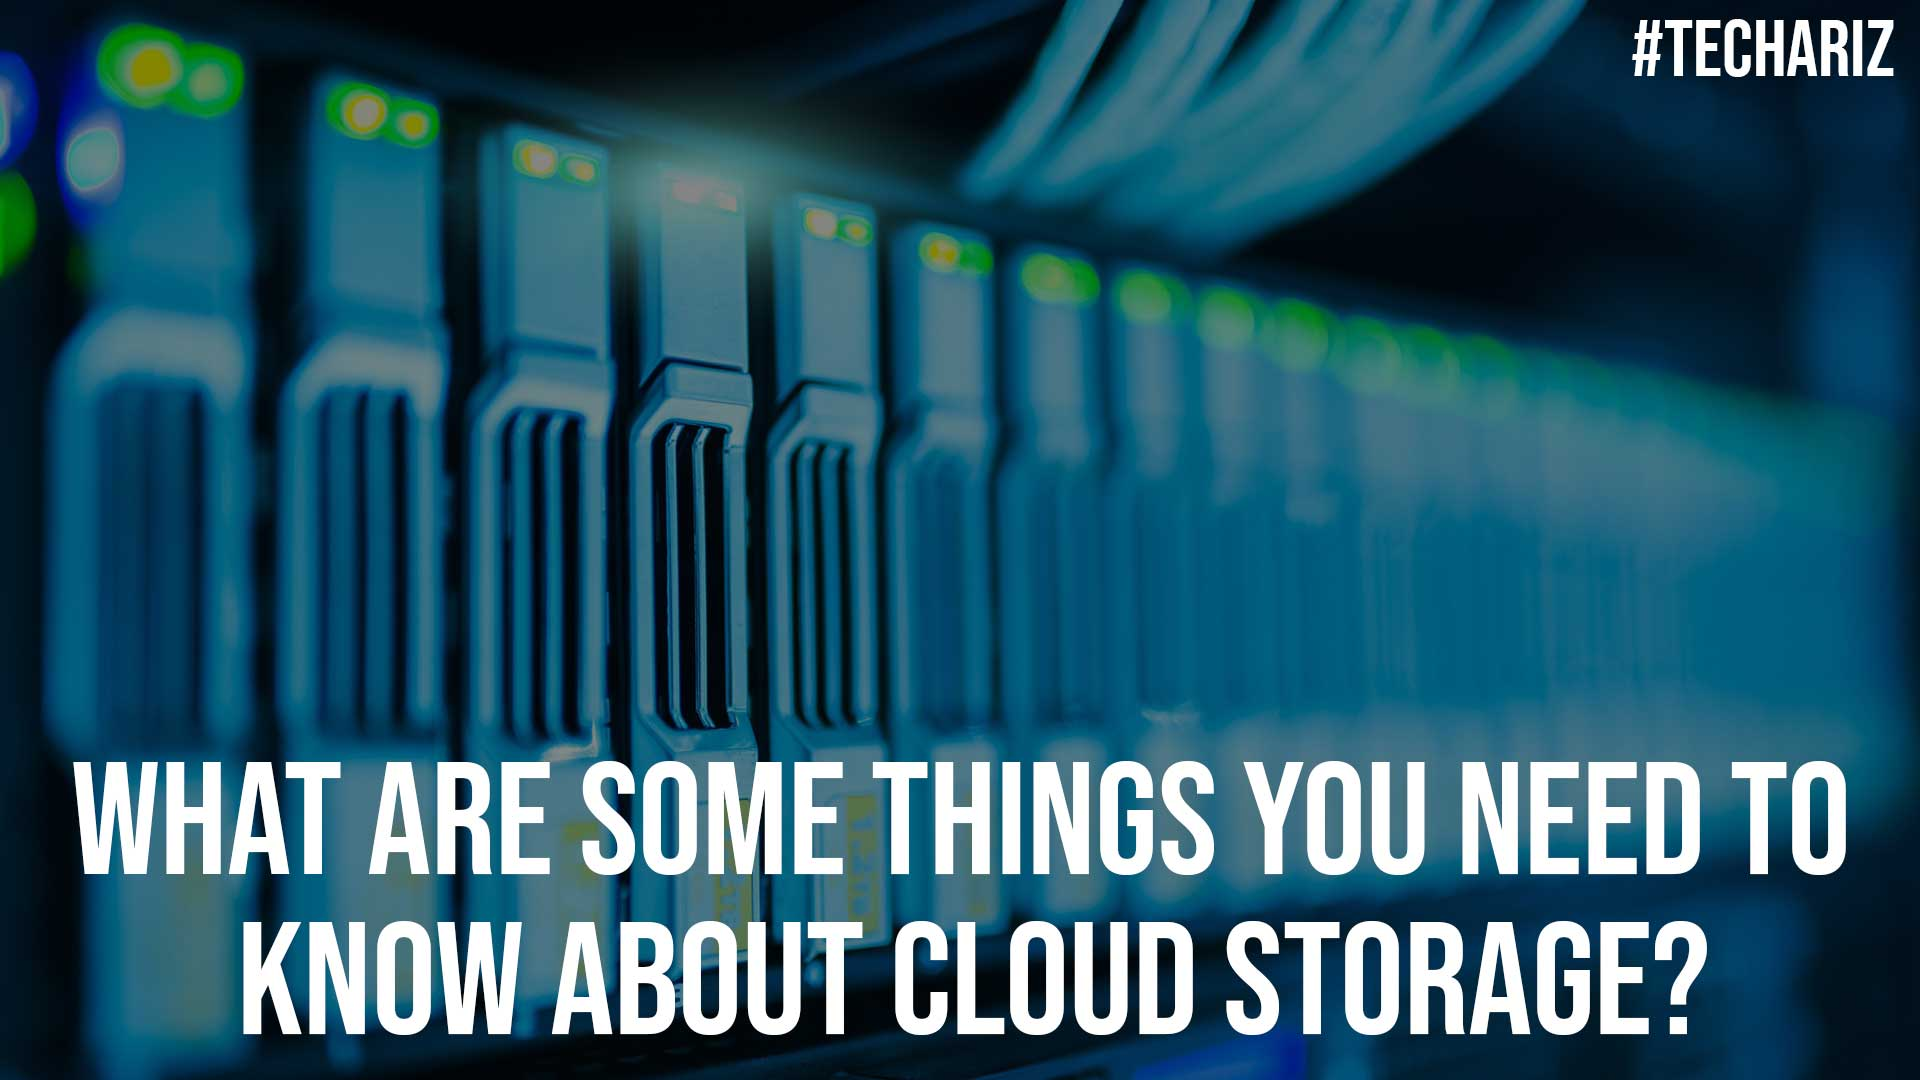 What Are Some Things You Need to Know About Cloud Storage